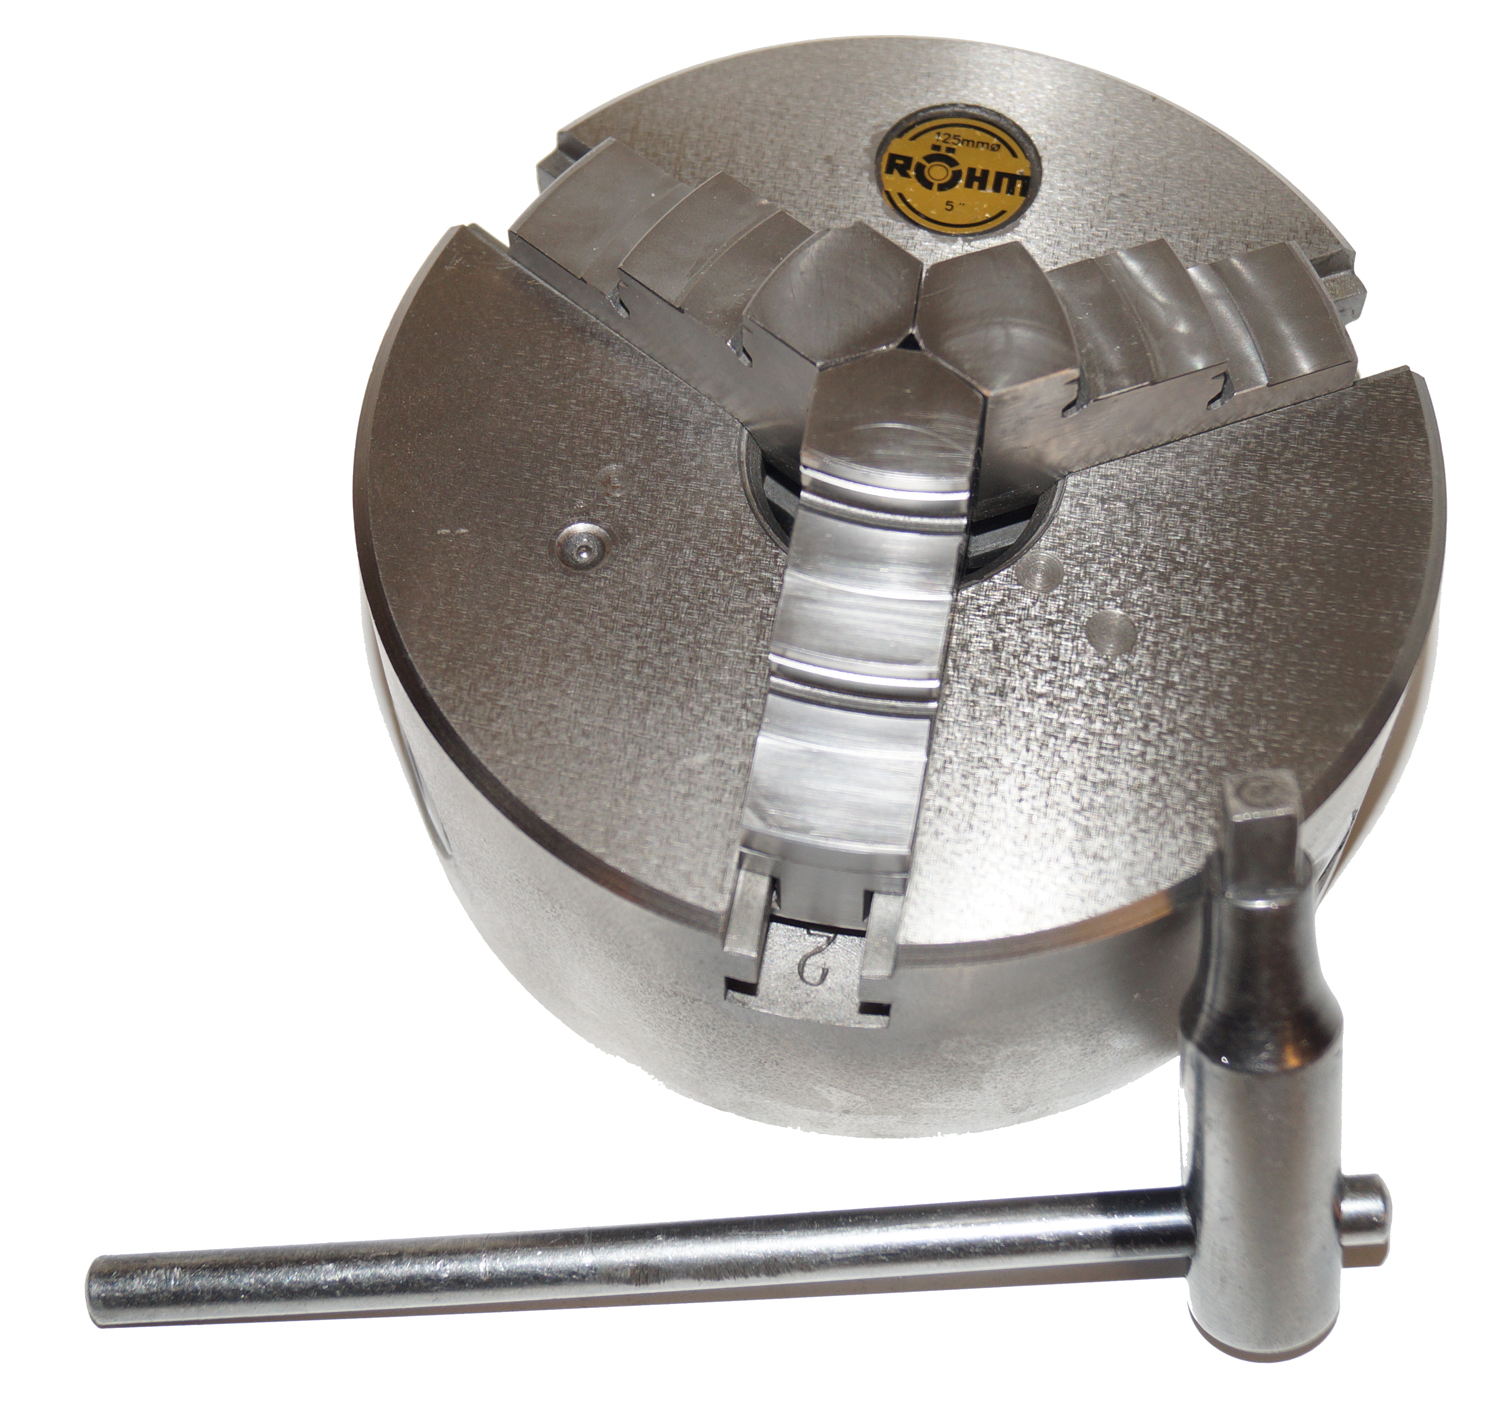 Rohm - 3 Jaws, 5 Inch Diameter, Self Centering Manual Lathe Chuck